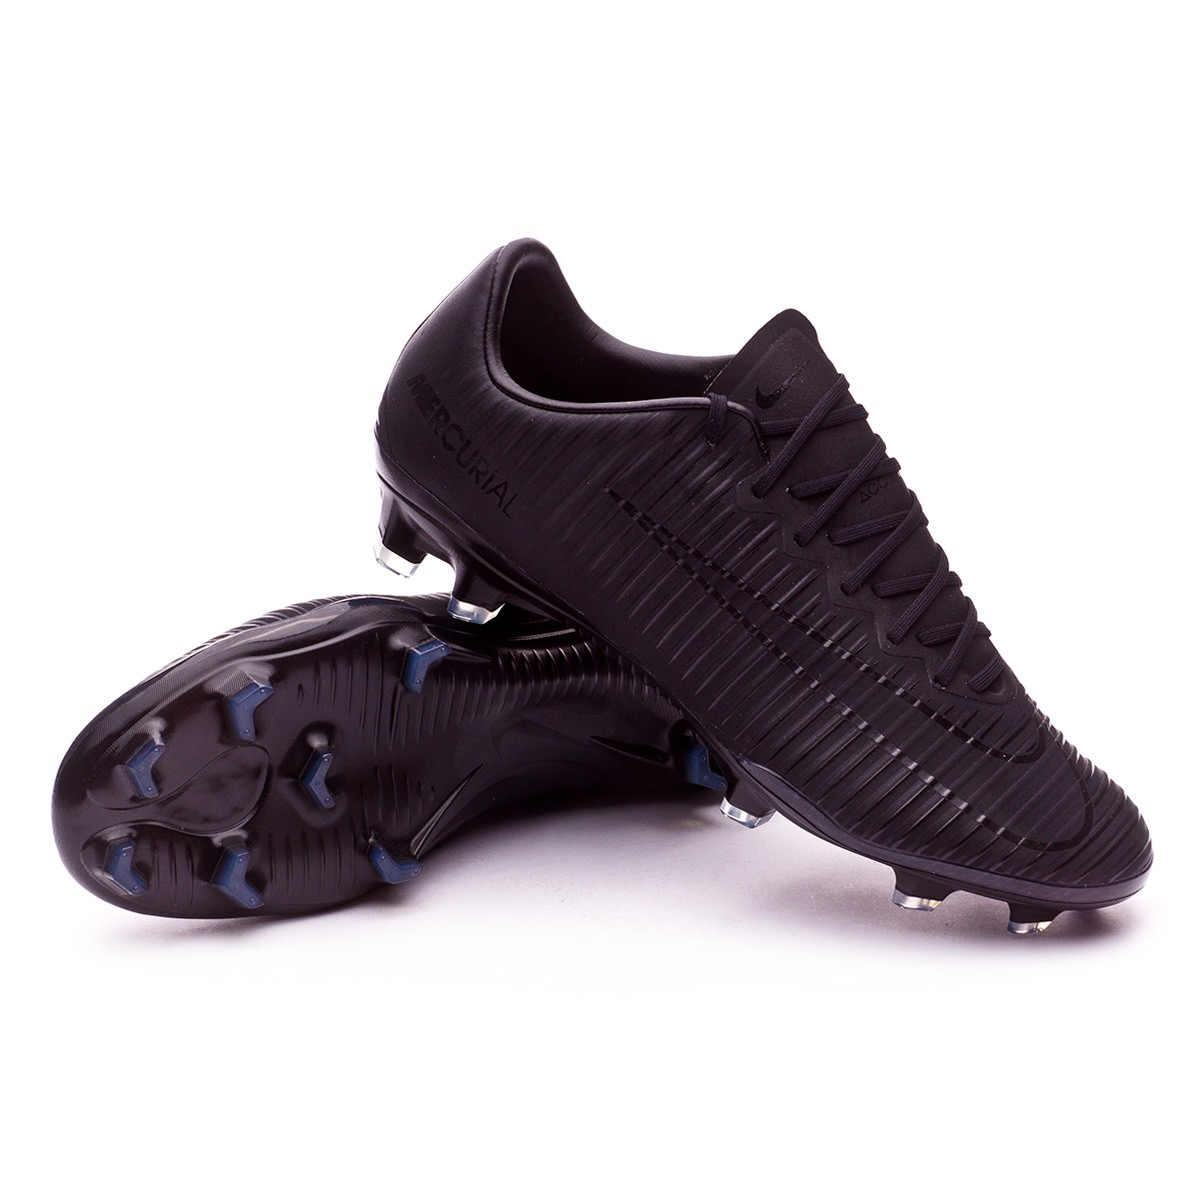 reasonable price various design best service best price nike mercurial vapour svart 36177 432e9